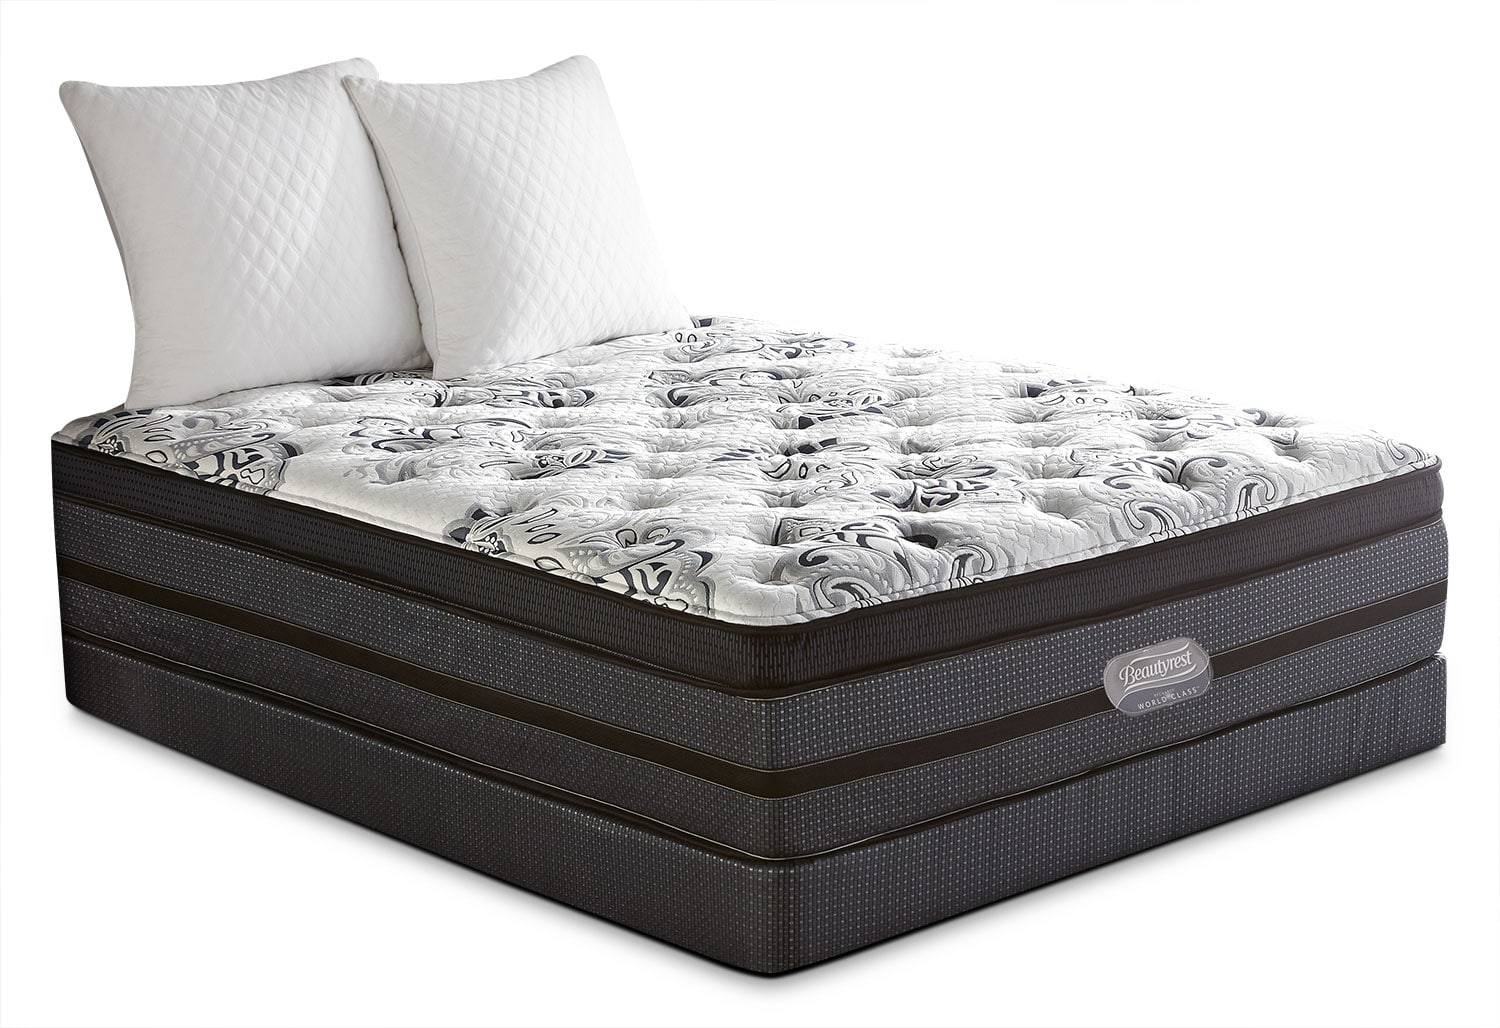 Mattresses and Bedding - Simmons Beautyrest® World Class Paxson Comfort-Top Firm King Mattress Set